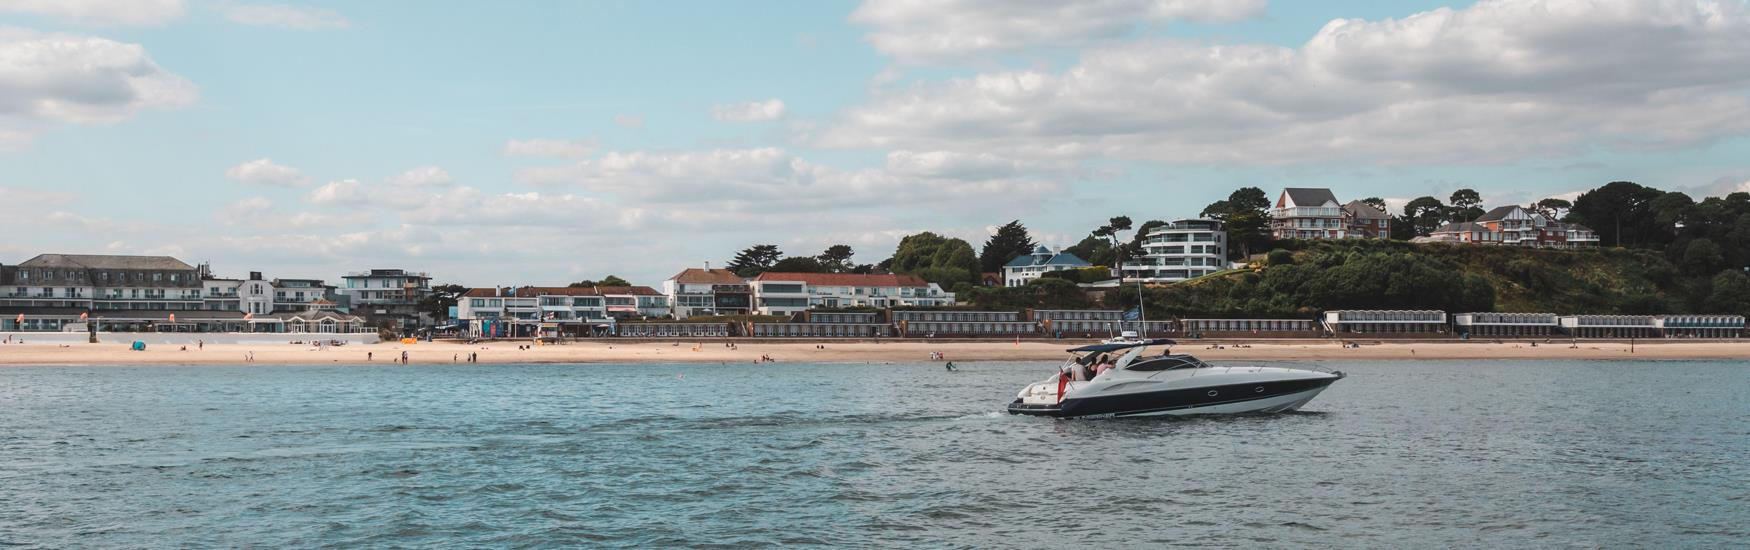 Speedboat pictured travelling along the coast, Sandbanks beach in the  background.